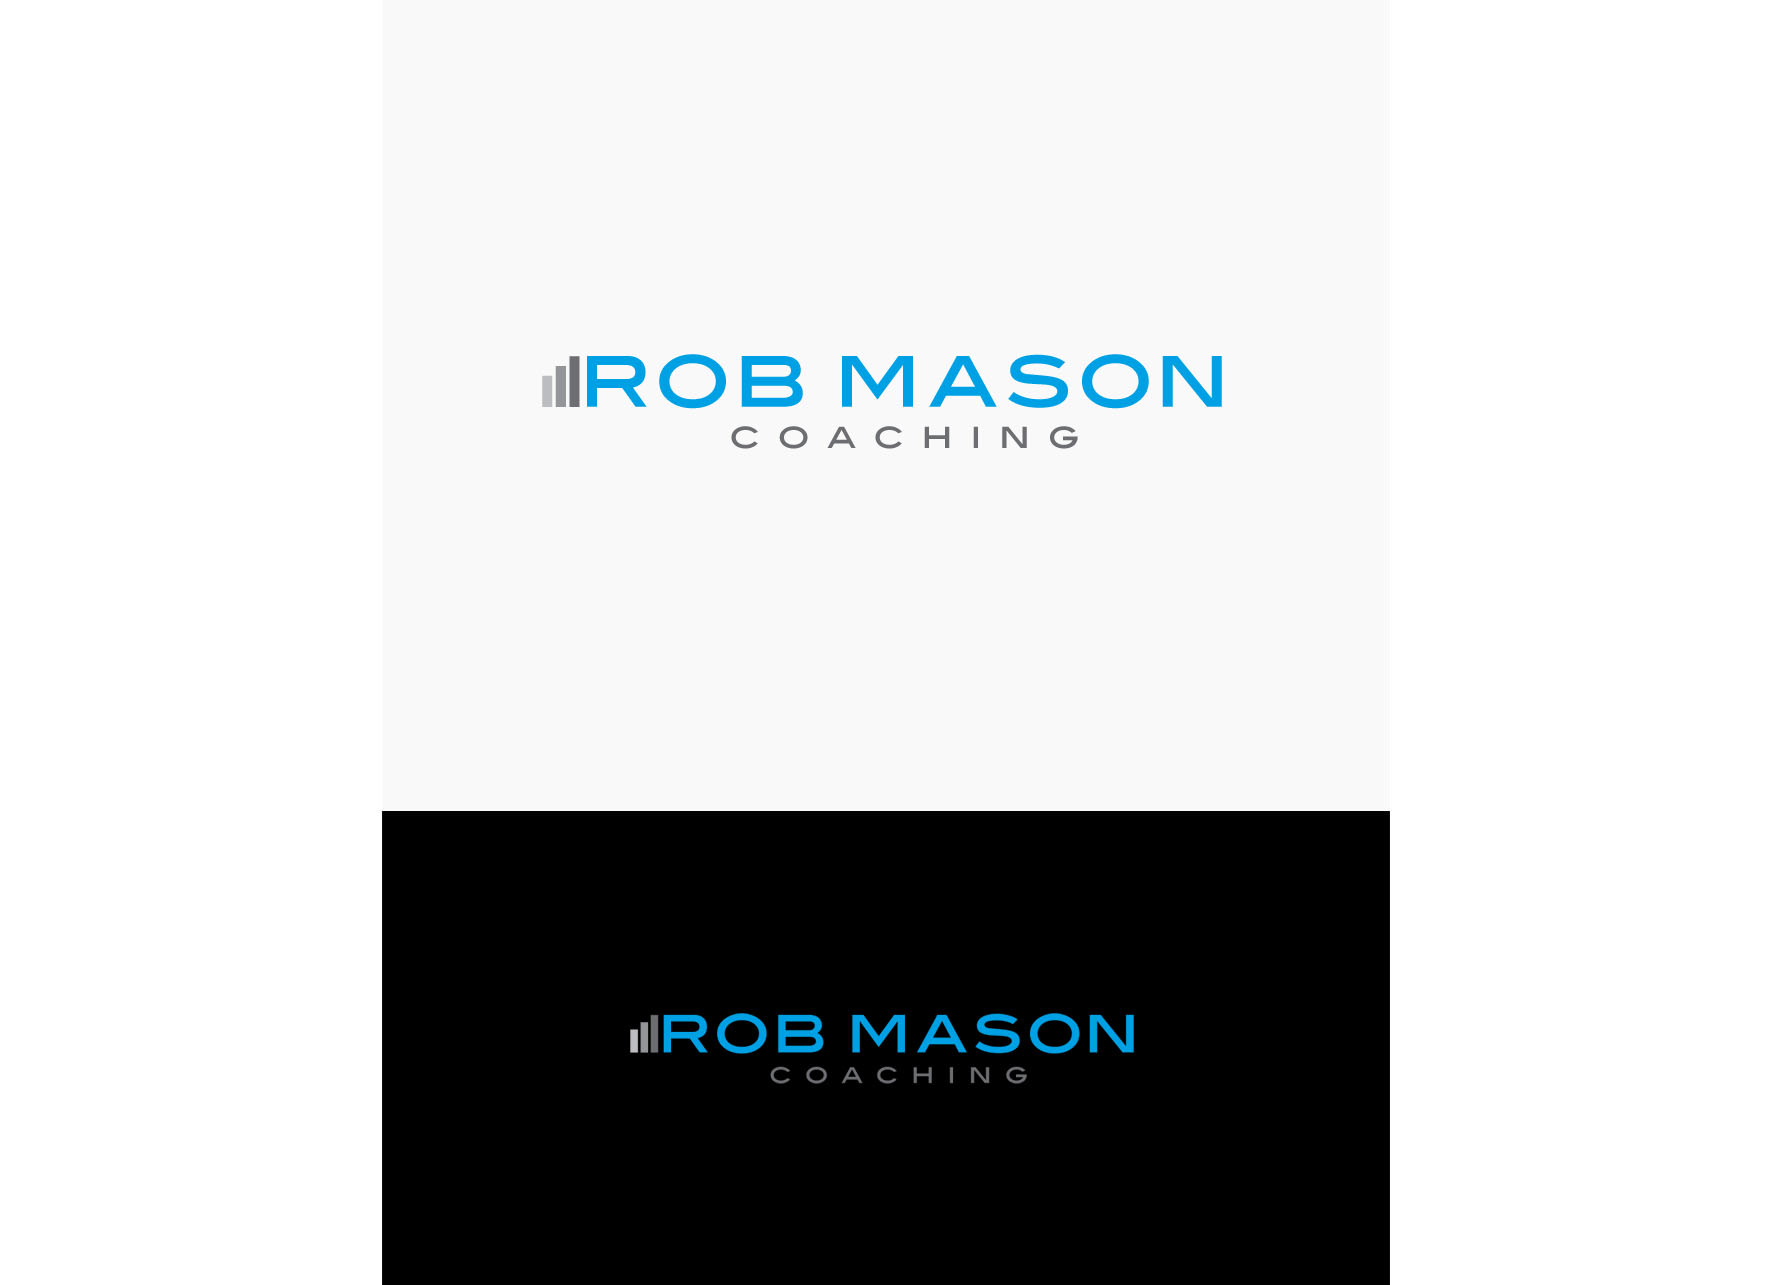 Logo Design by tanganpanas - Entry No. 68 in the Logo Design Contest New Logo Design Needed for Exciting Company Rob Mason Coaching.